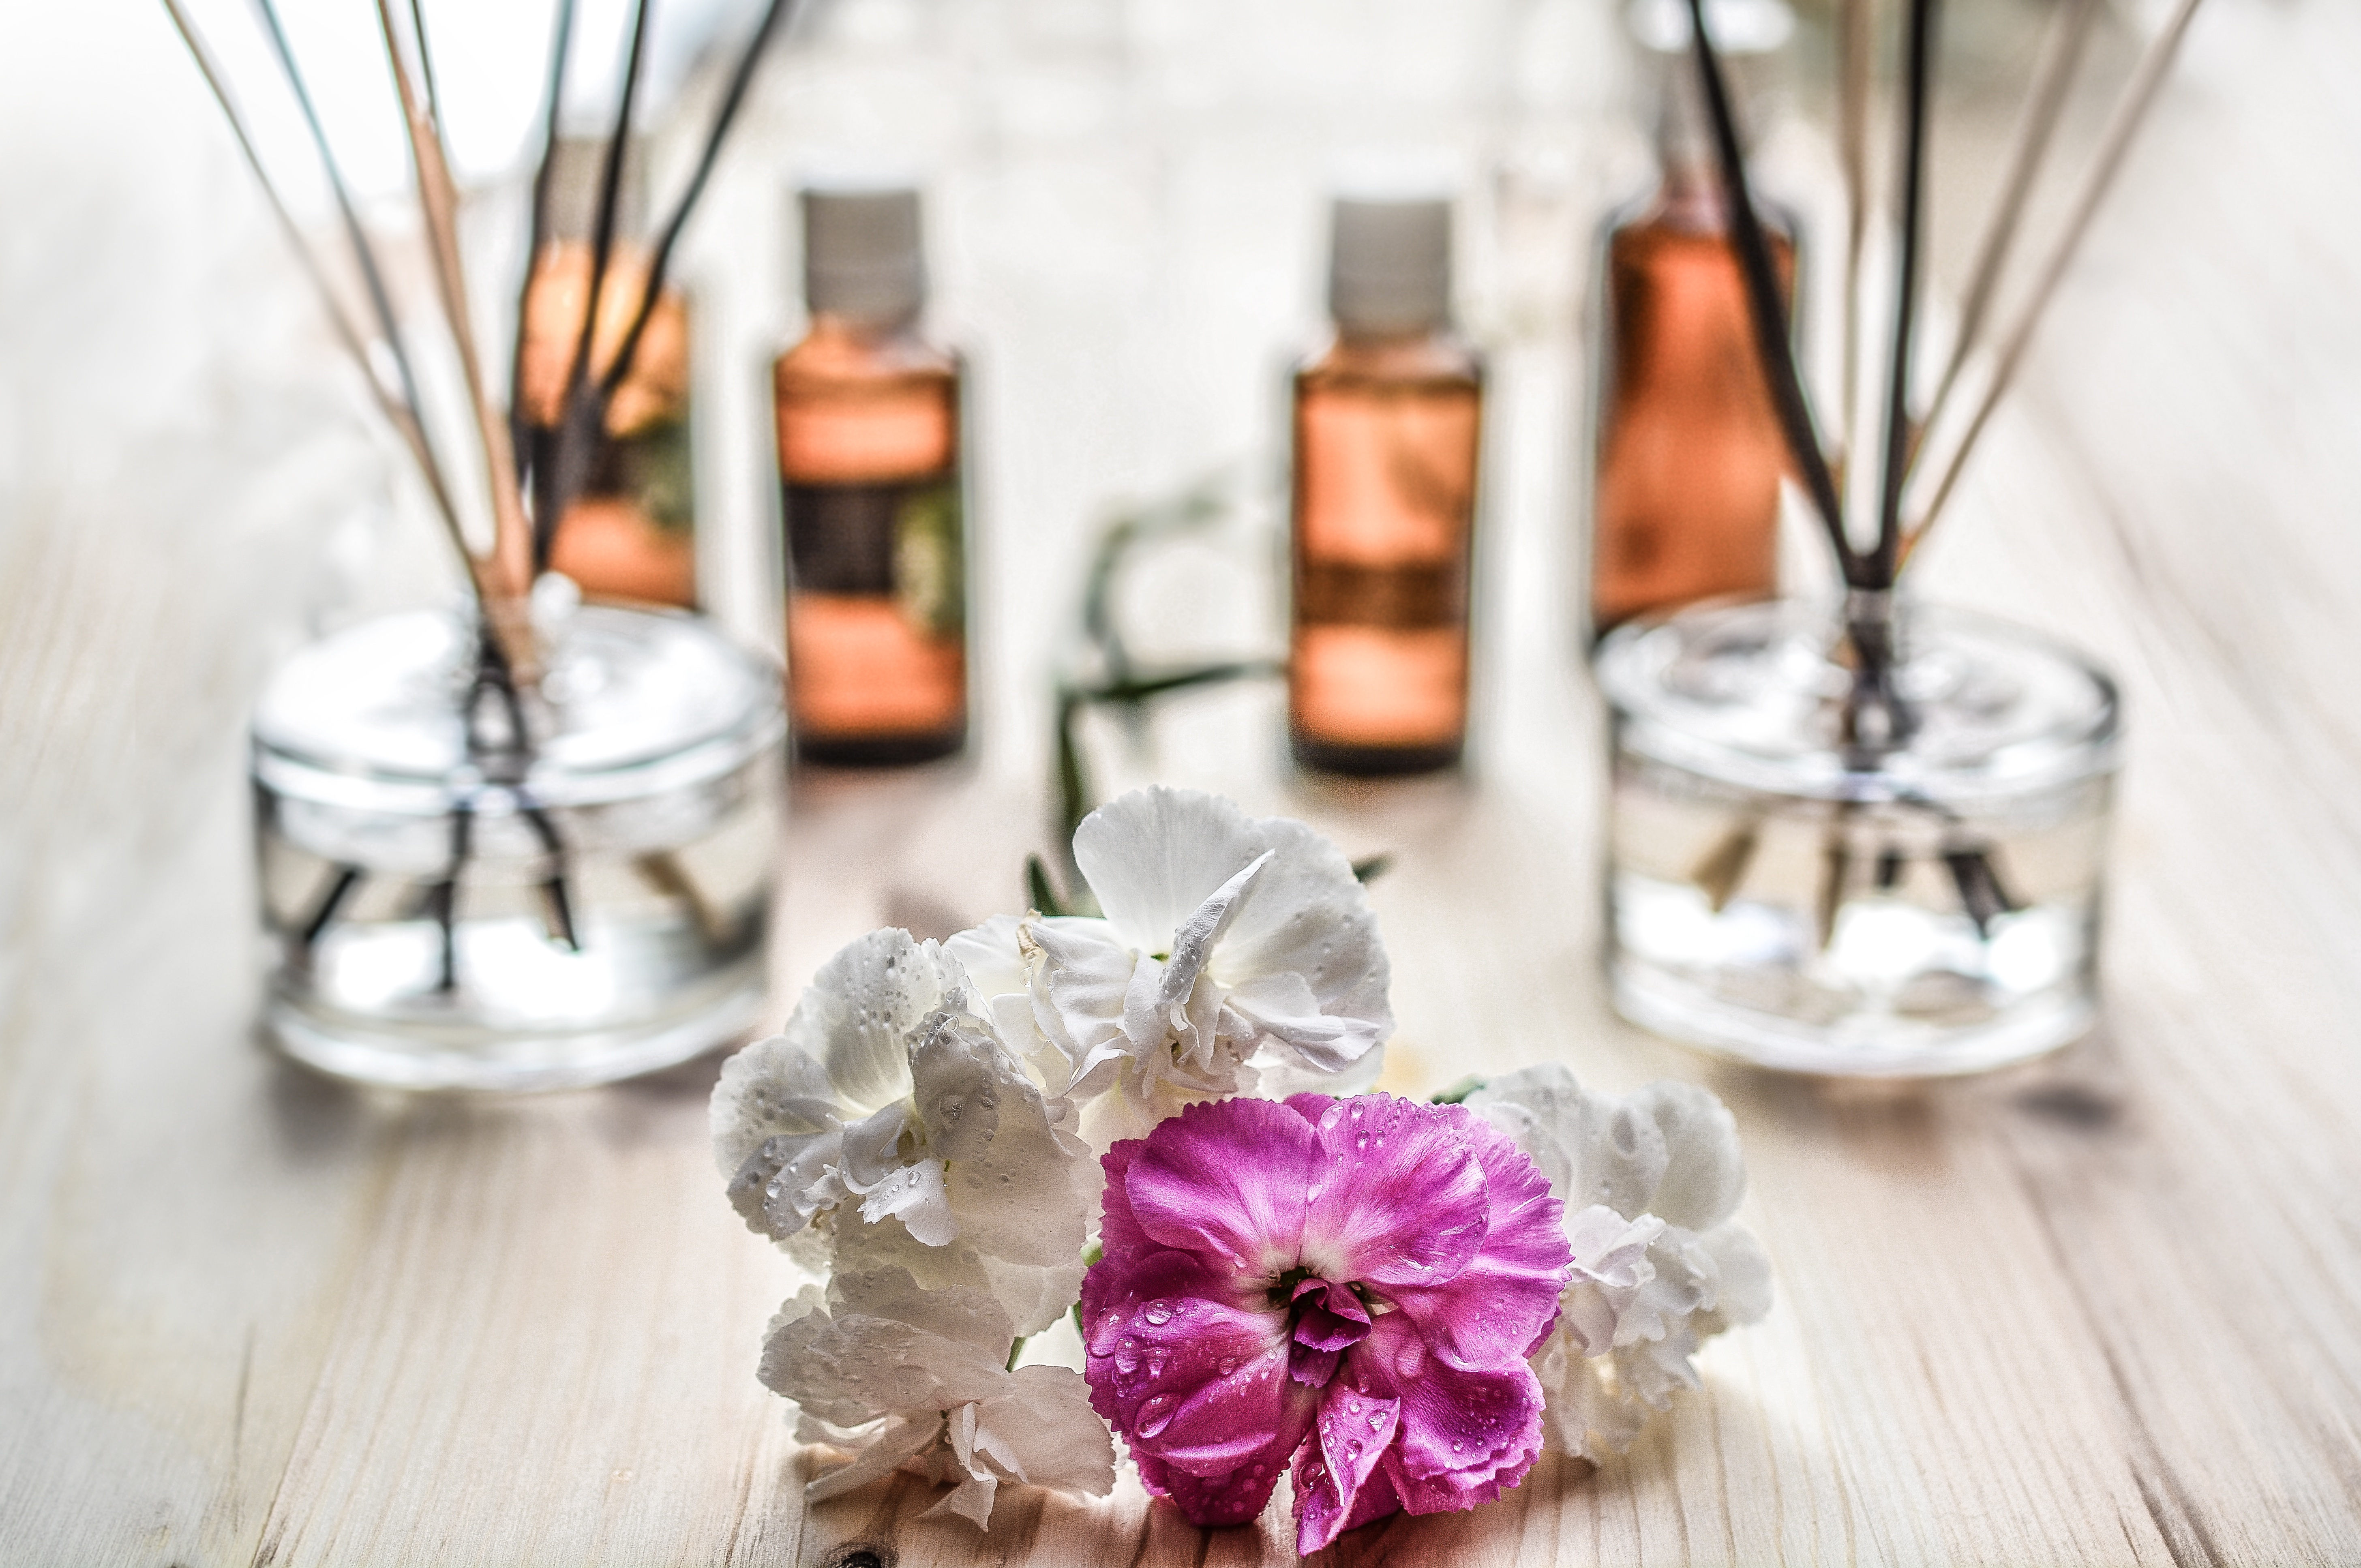 Aromatherapy Healing Techniques Most People use today